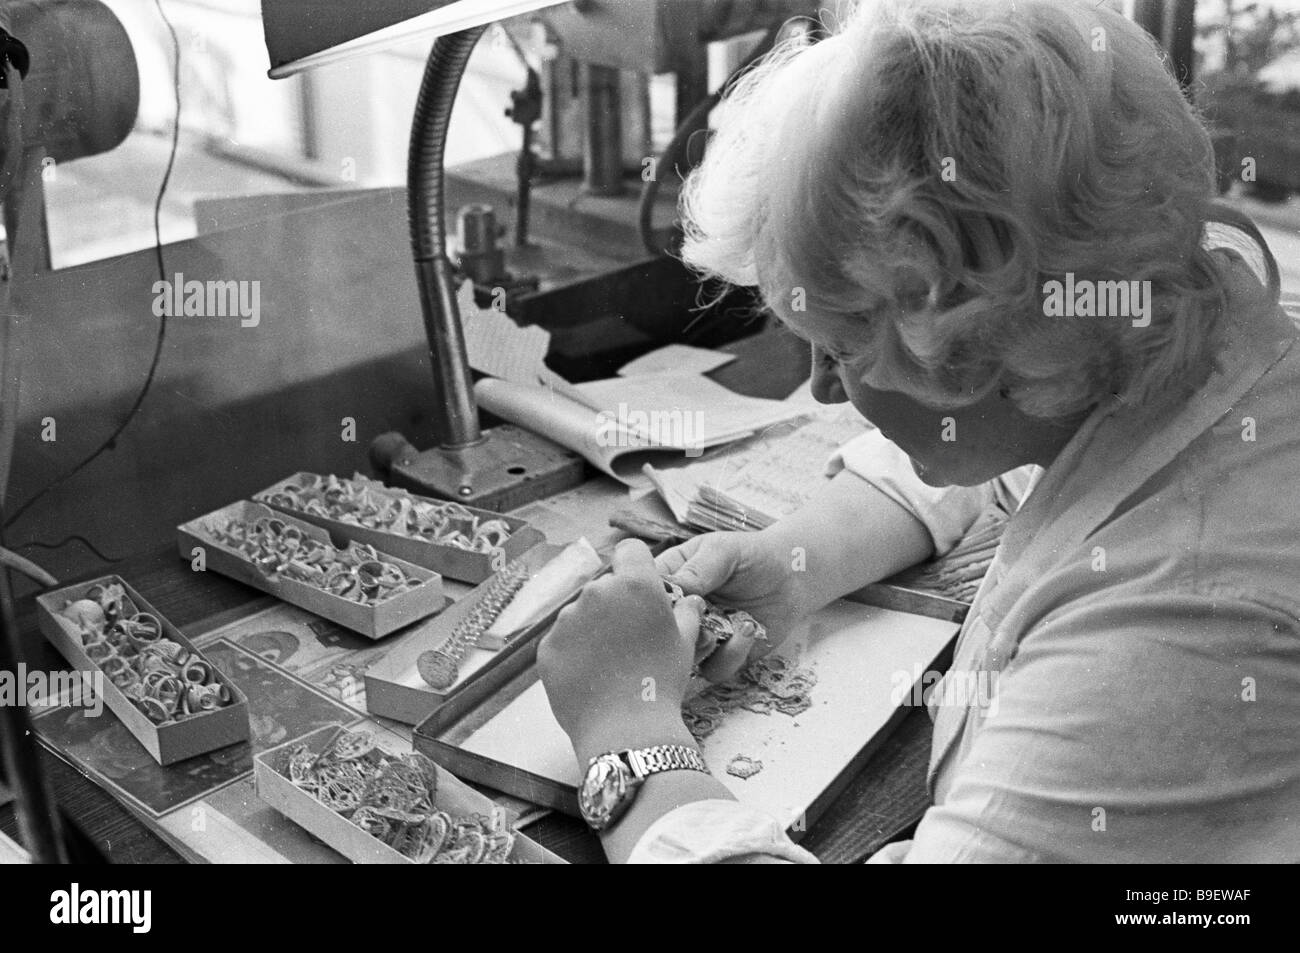 A Urals jewel factory quality controller is checking earrings - Stock Image